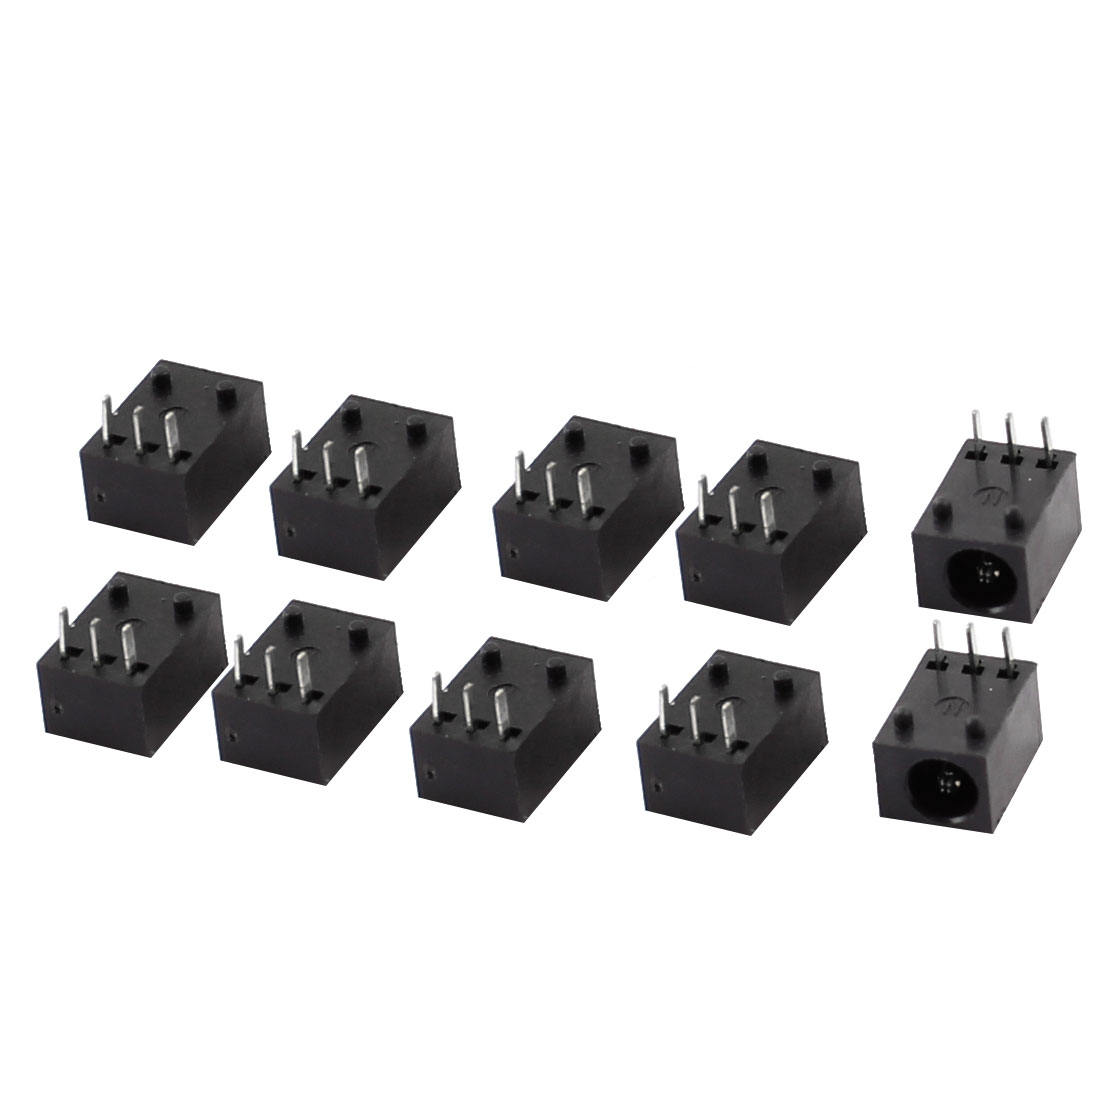 10 Pcs Black 3 Pin 3.5mm x 1.3mm DC Power Jack Socket PCB Mounting Connector